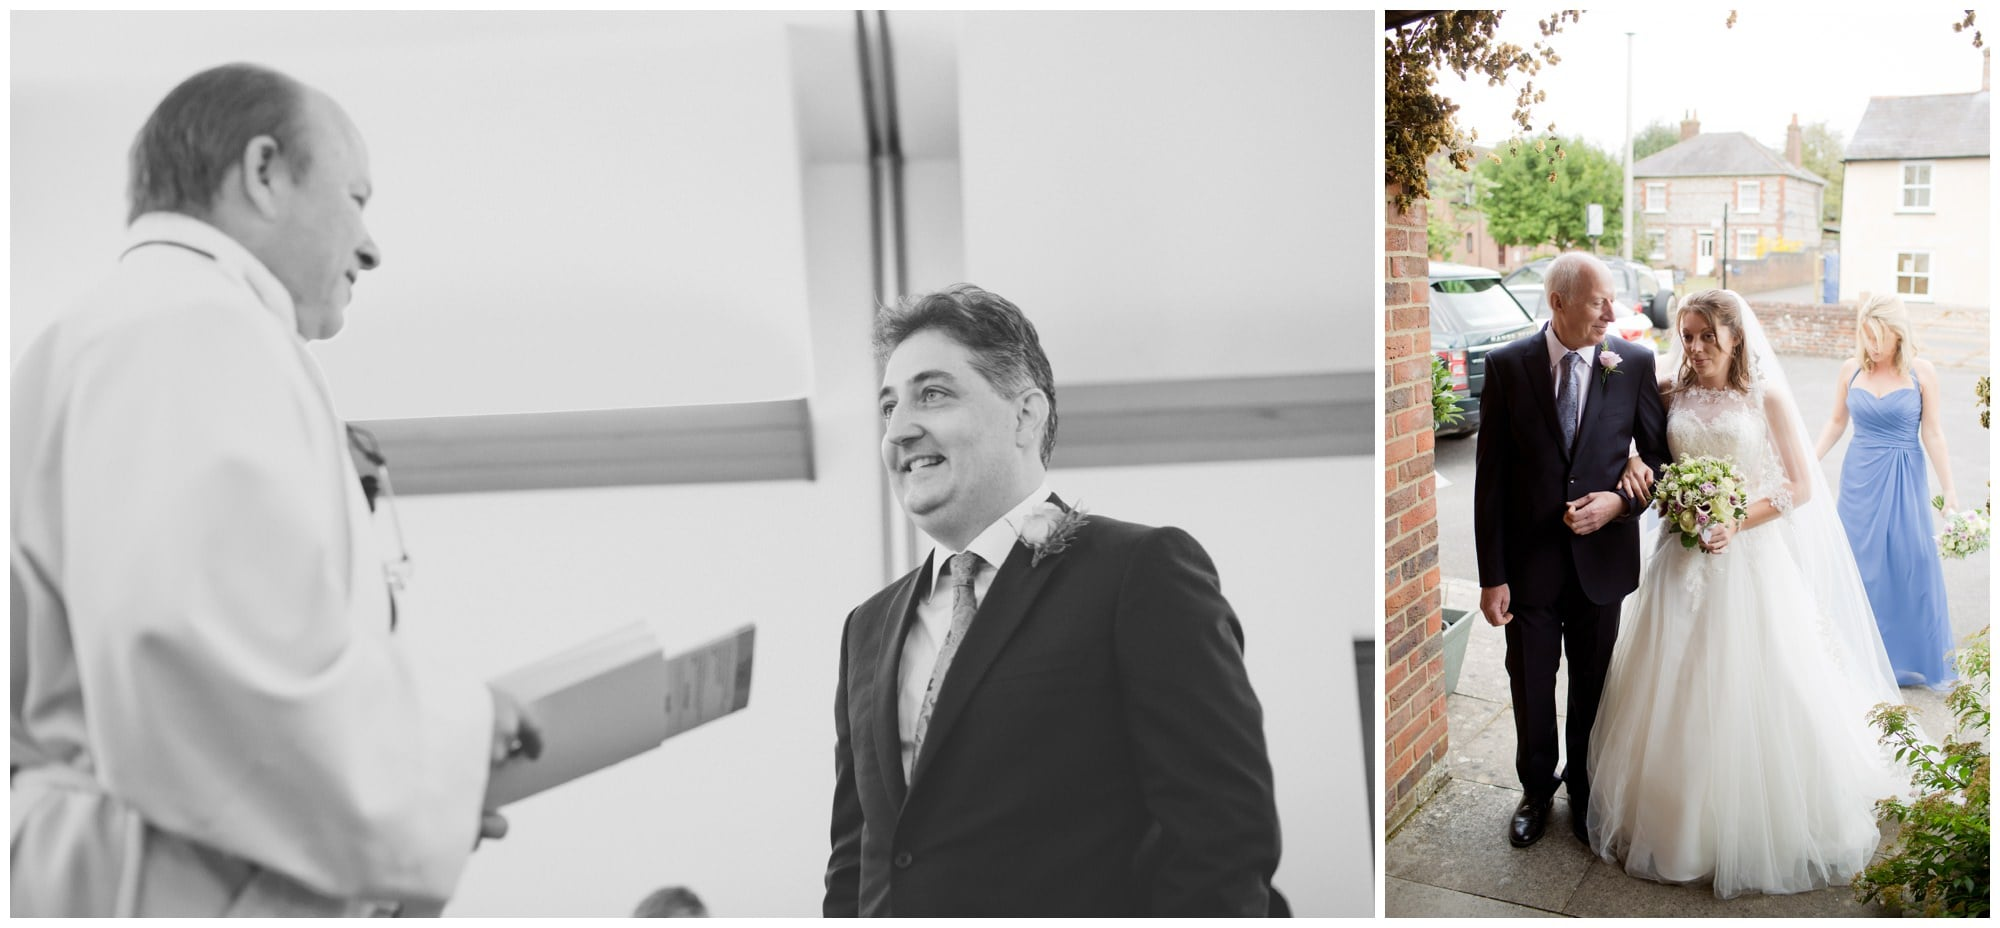 Wedding in Whitchurch Hampshire